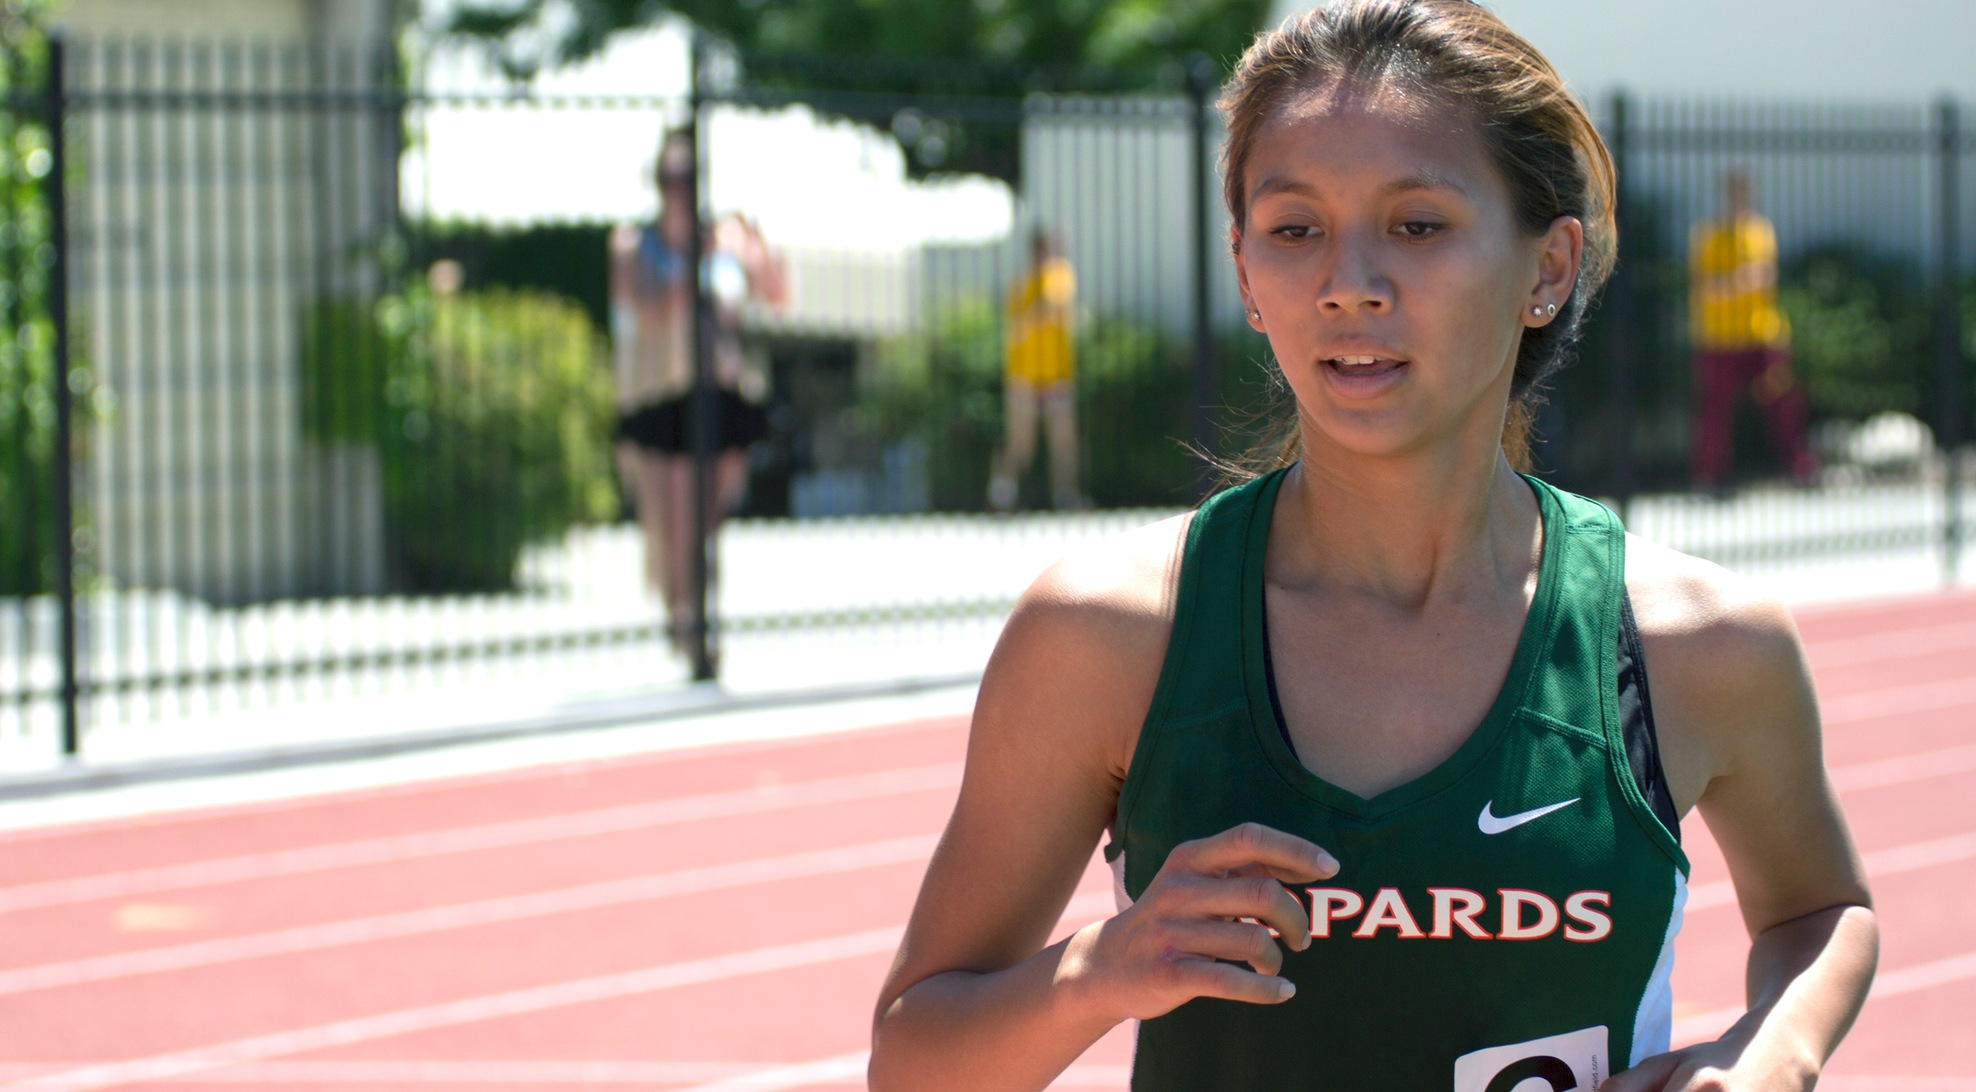 Cerrillos takes mile at Westmont meet